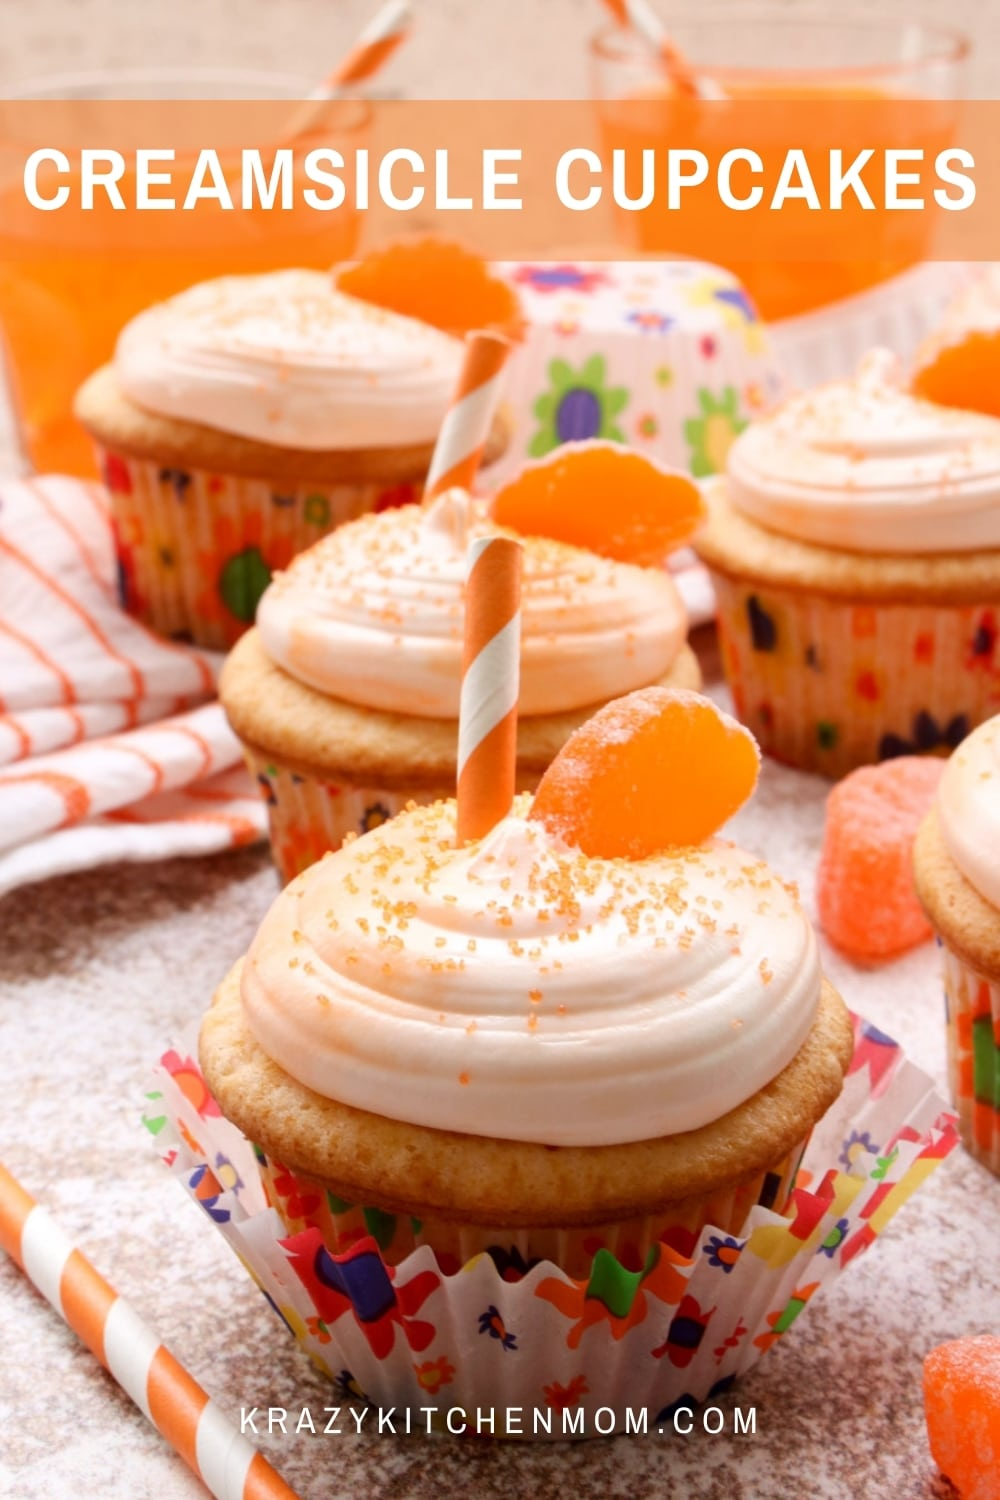 Soft, light, fluffy orange creamsicle cupcakes are made with orange soda pop and topped with creamy marshmallow frosting. via @krazykitchenmom